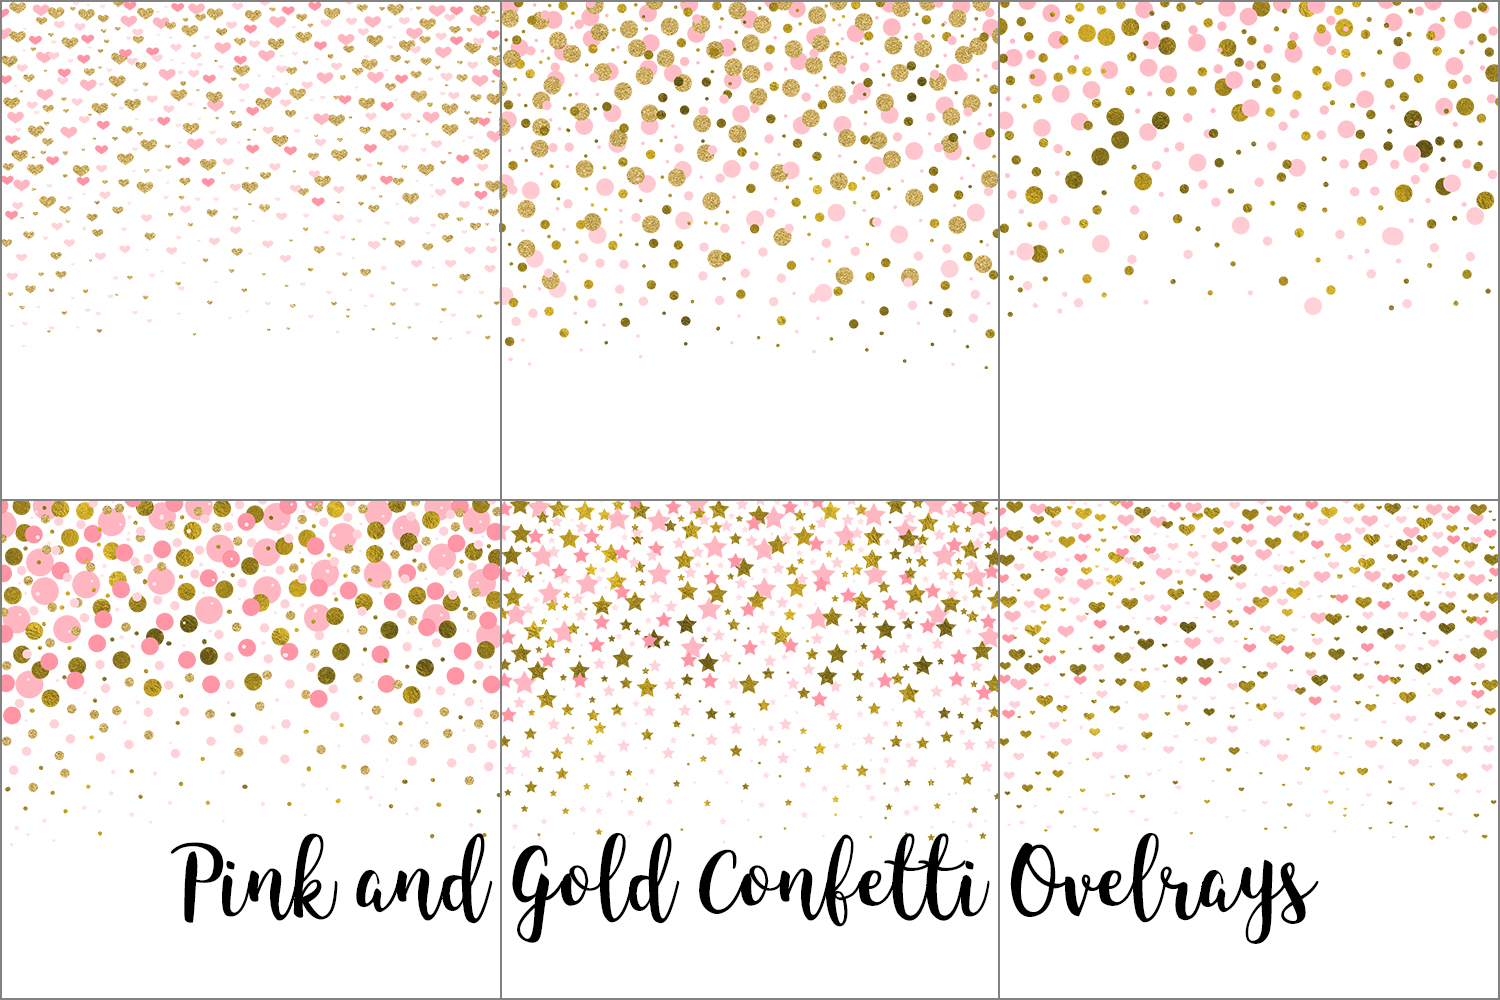 Pink and Gold Confetti Overlays, Transparent PNGs example image 6